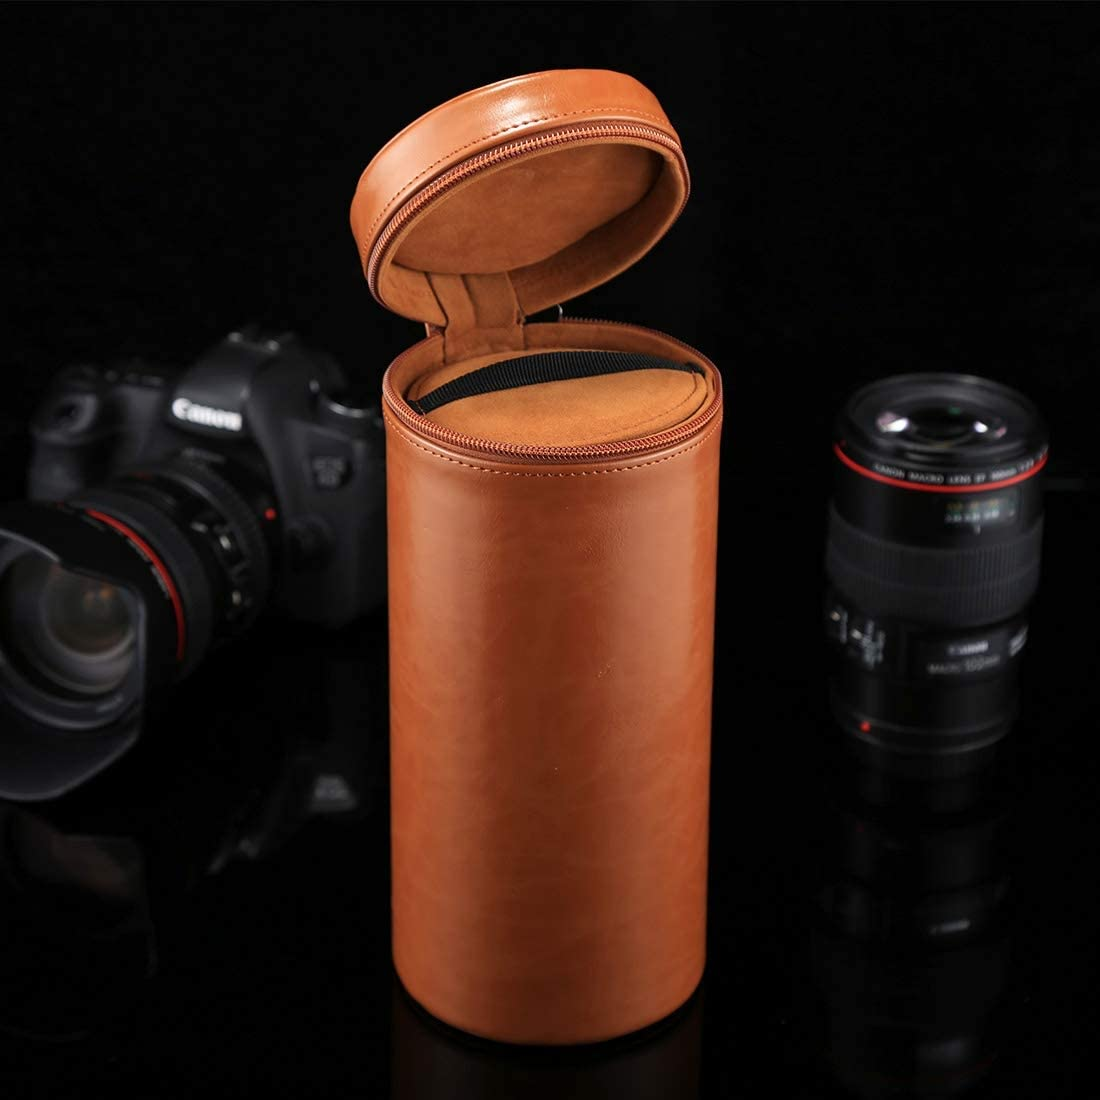 24.510.510.5cm Durable CAOMING Extra Large Lens Case Zippered PU Leather Pouch Box for DSLR Camera Lens Size Color : Coffee